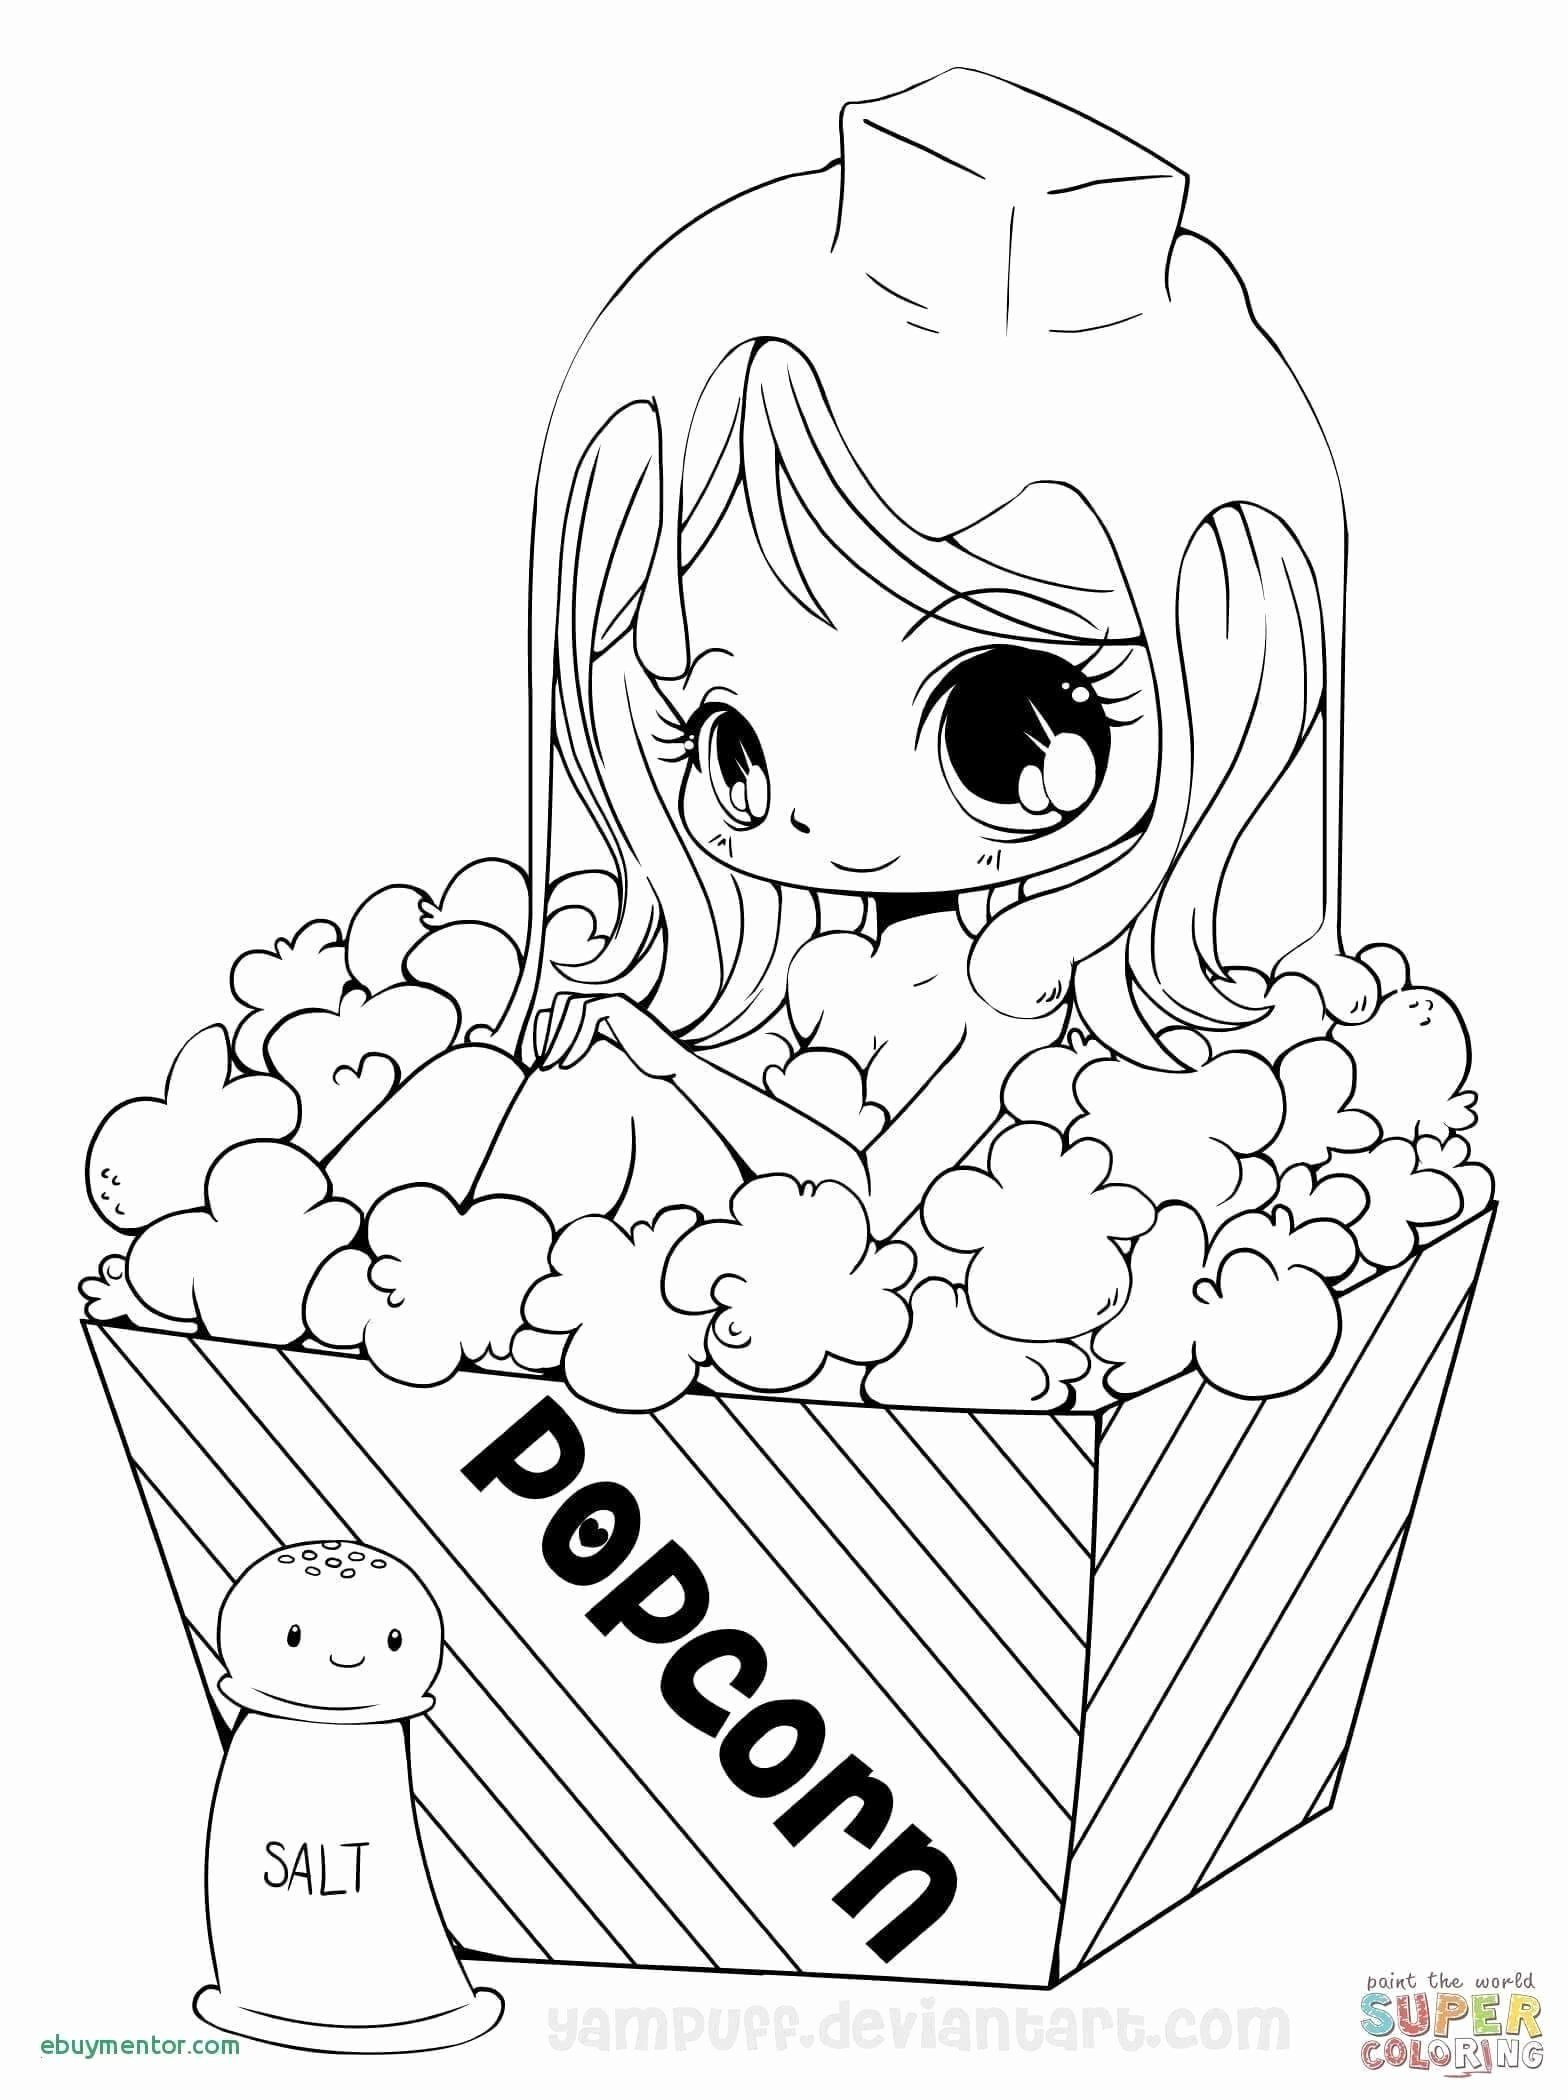 Printable Sport Coloring Sheets Awesome Best Girl Basketball Player Coloring Sheet Kurskn In 2020 Chibi Coloring Pages Cartoon Coloring Pages Princess Coloring Pages